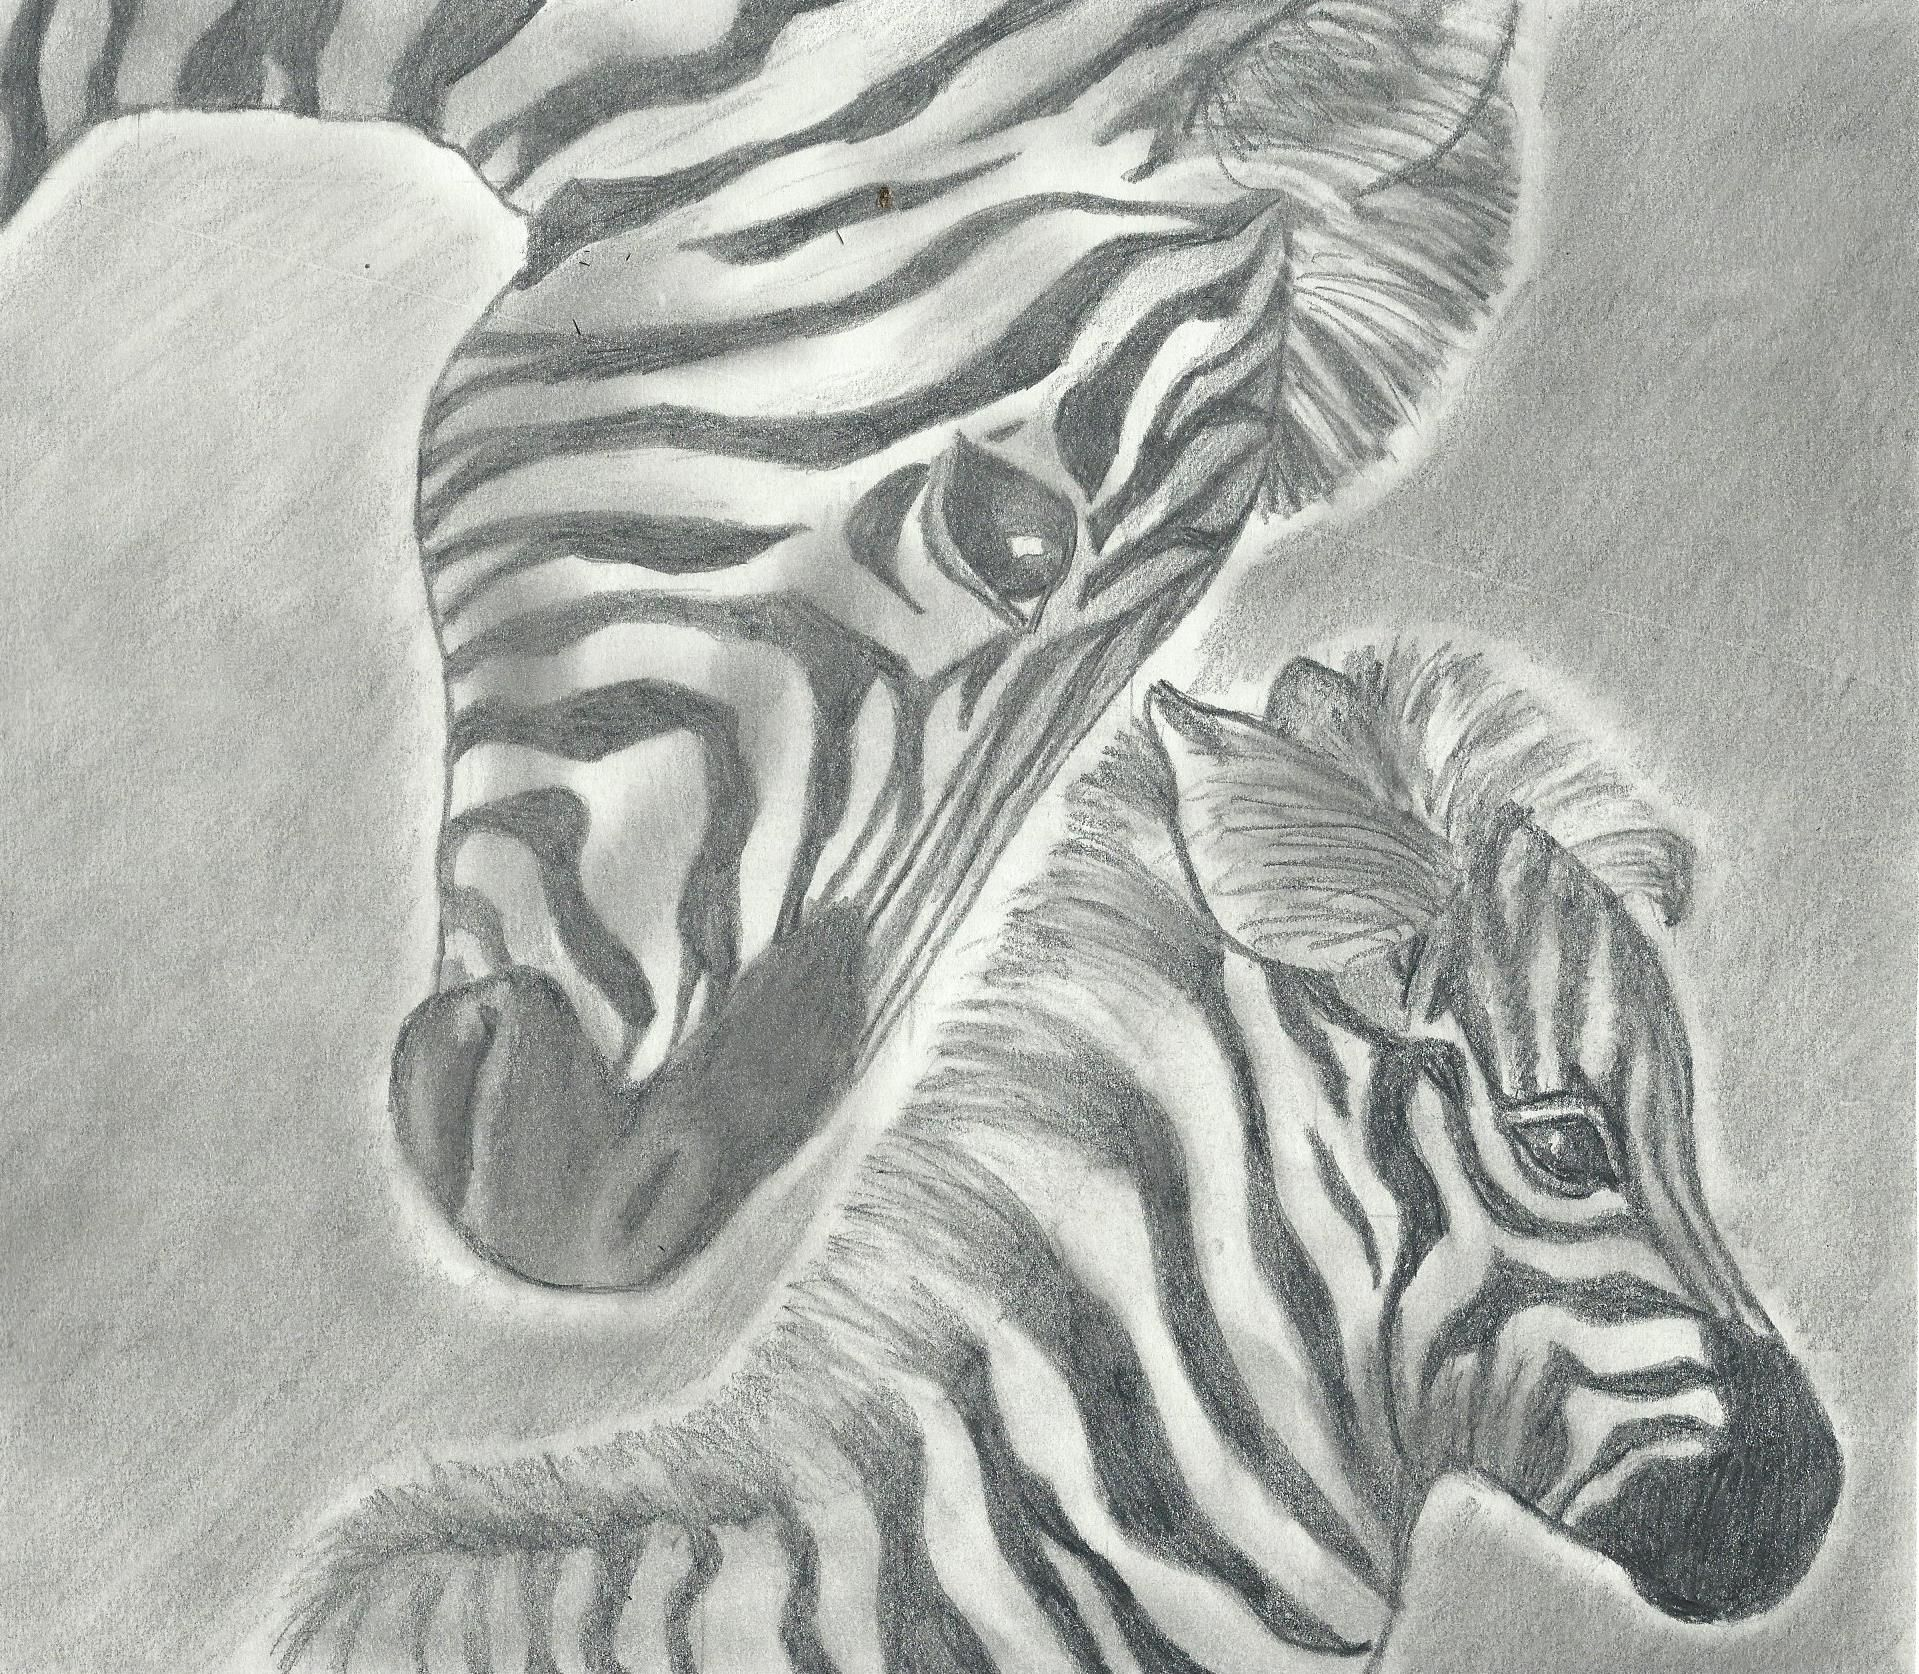 A pencil drawing of a zebra and her baby all my drawings are for